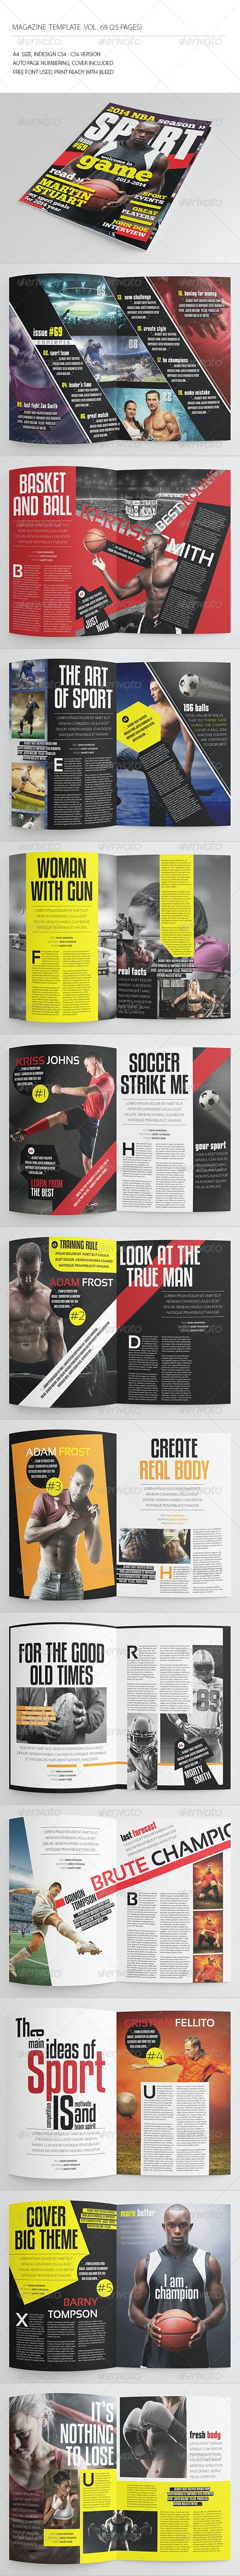 25 Pages Sport Magazine Vol69 - Magazines Print Templates